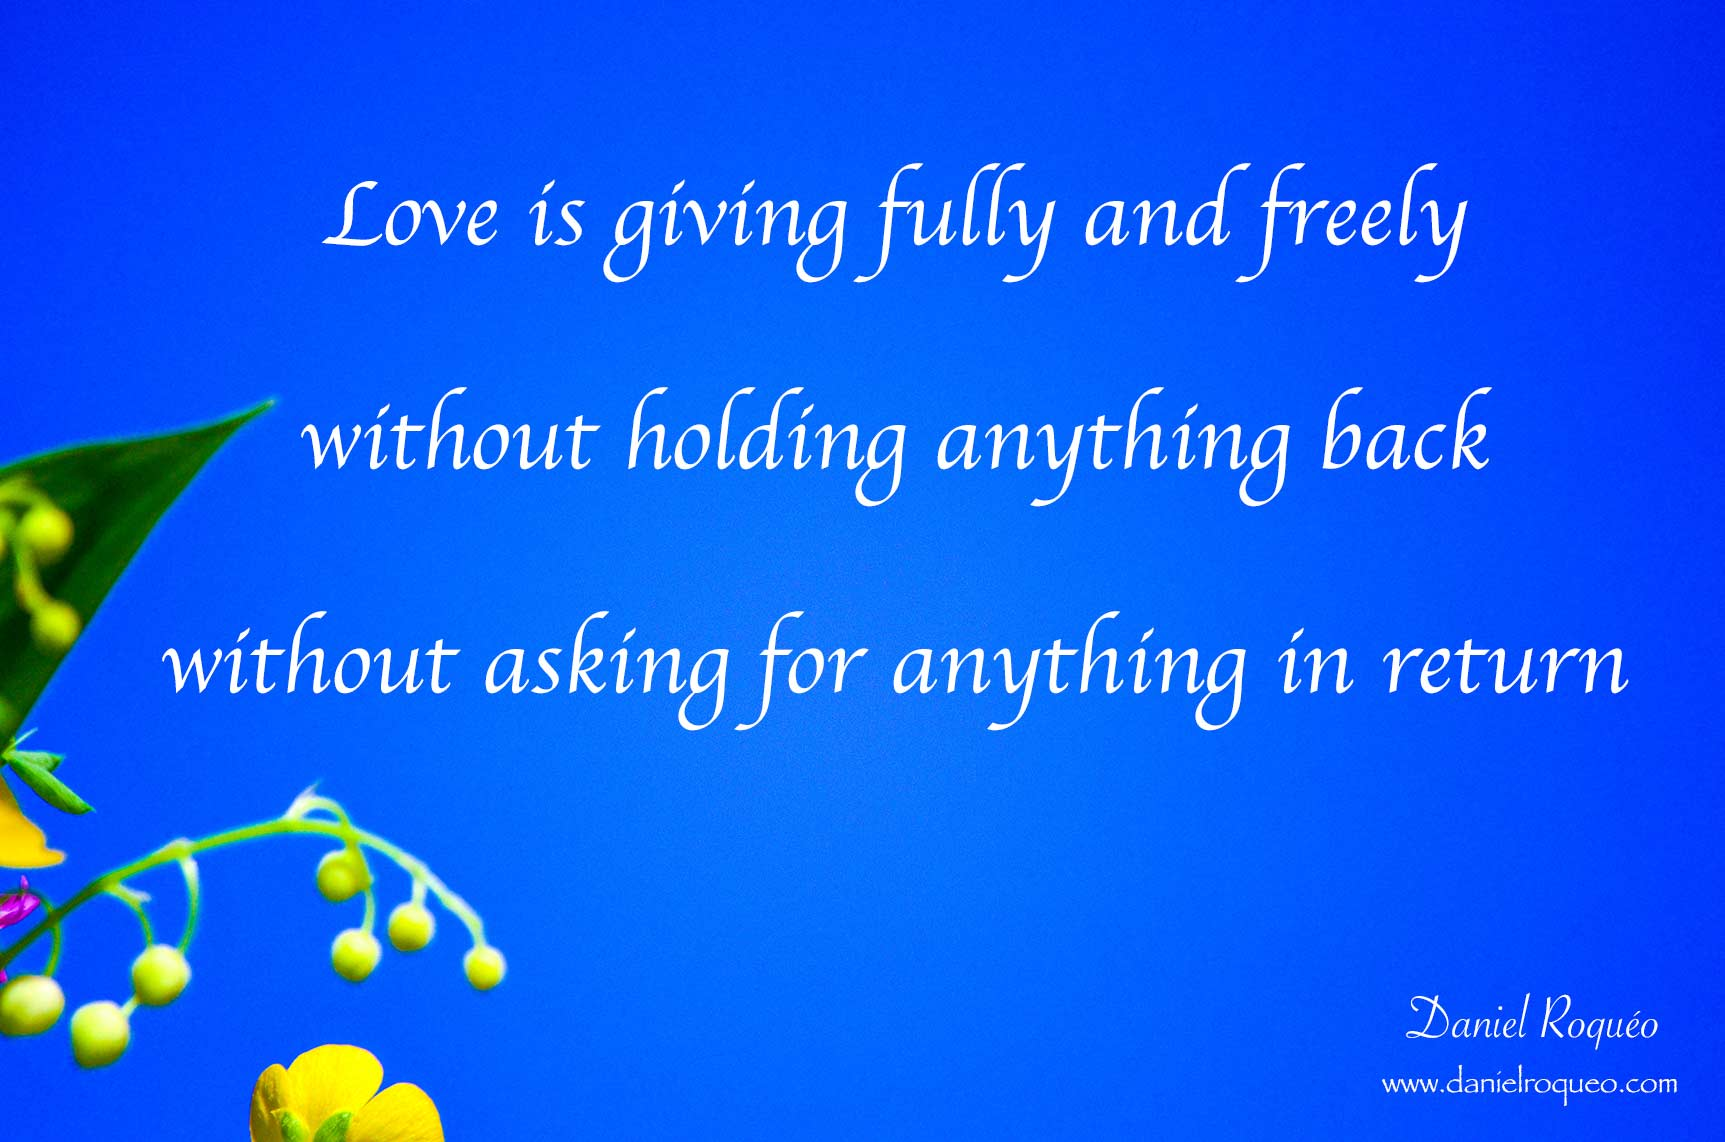 Love is giving fully and freely